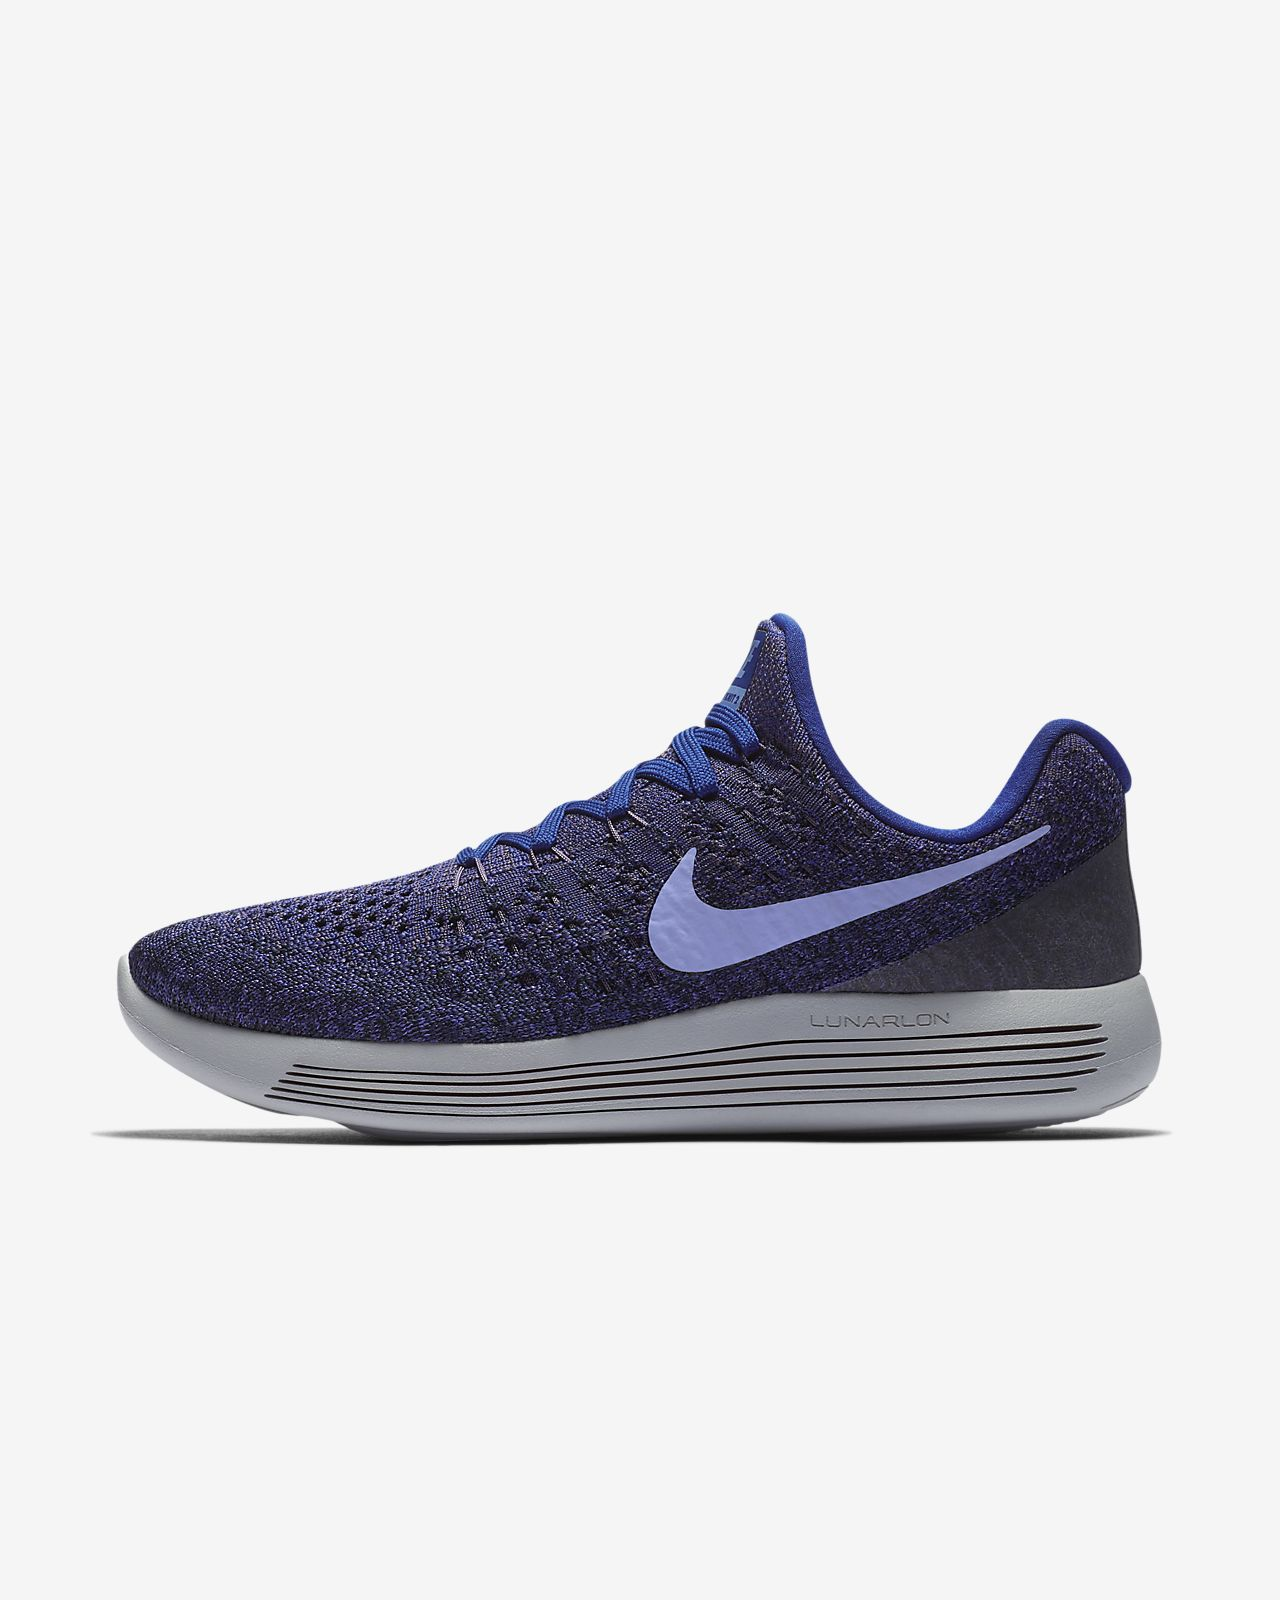 Nike LunarEpic Low Flyknit 2 Women s Running Shoe. Nike.com ID 9cd3d11ab7ca